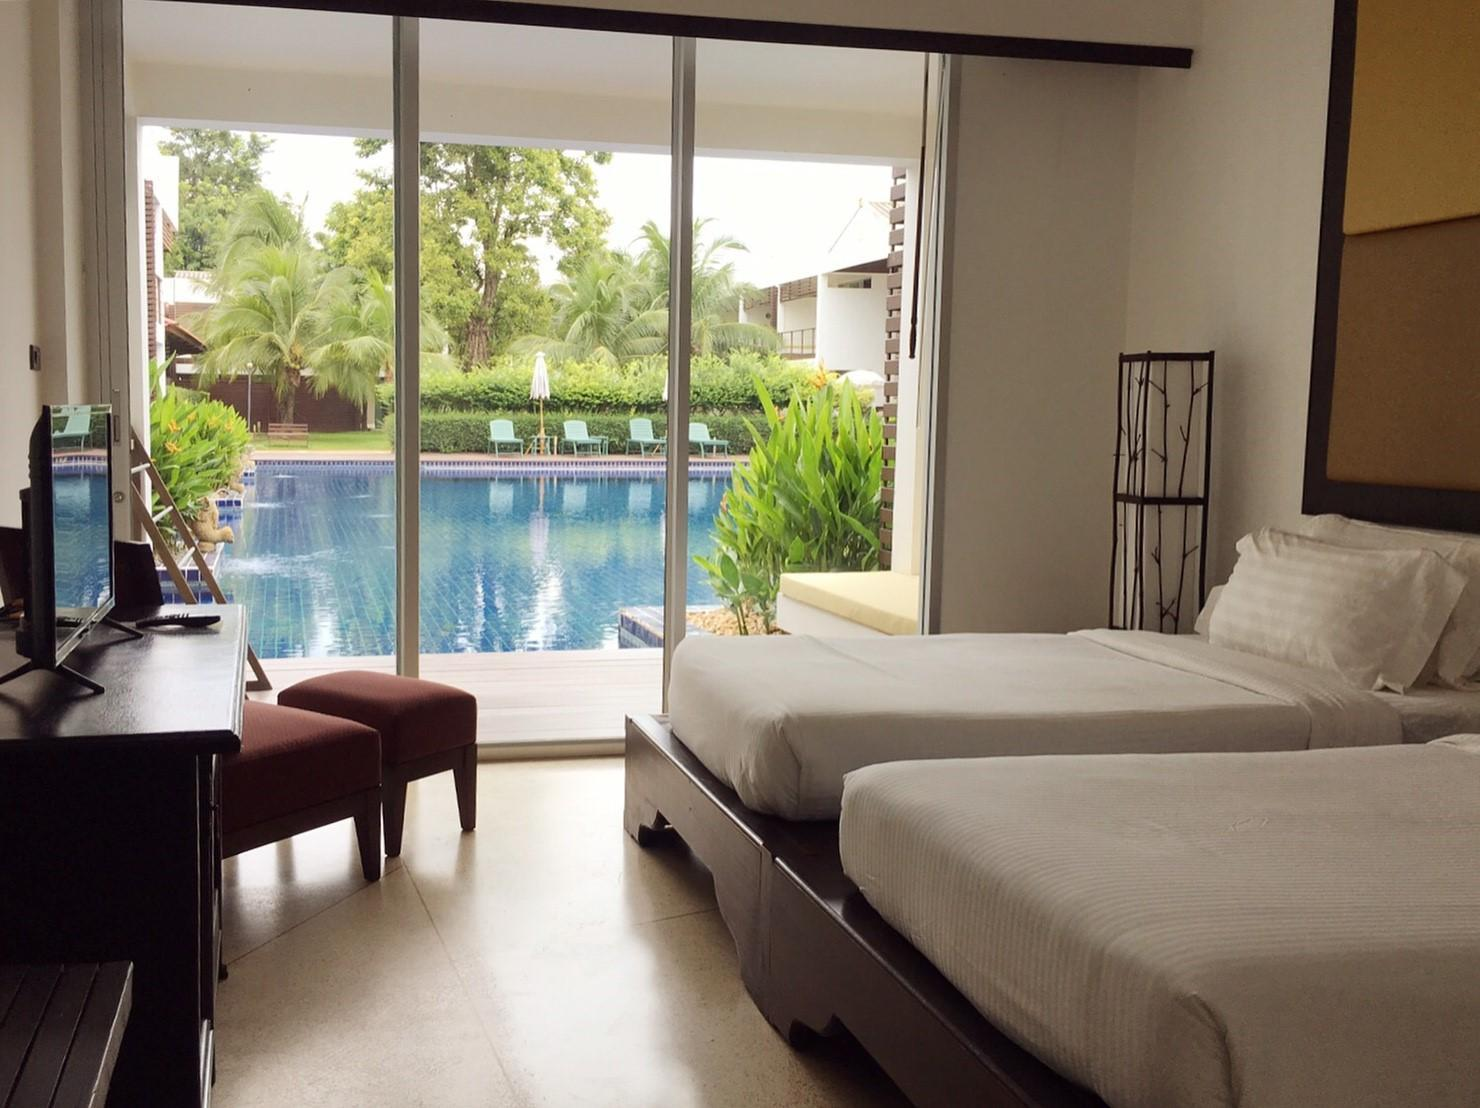 Pool Zugang Doppelzimmer (Pool Access Twin Room)